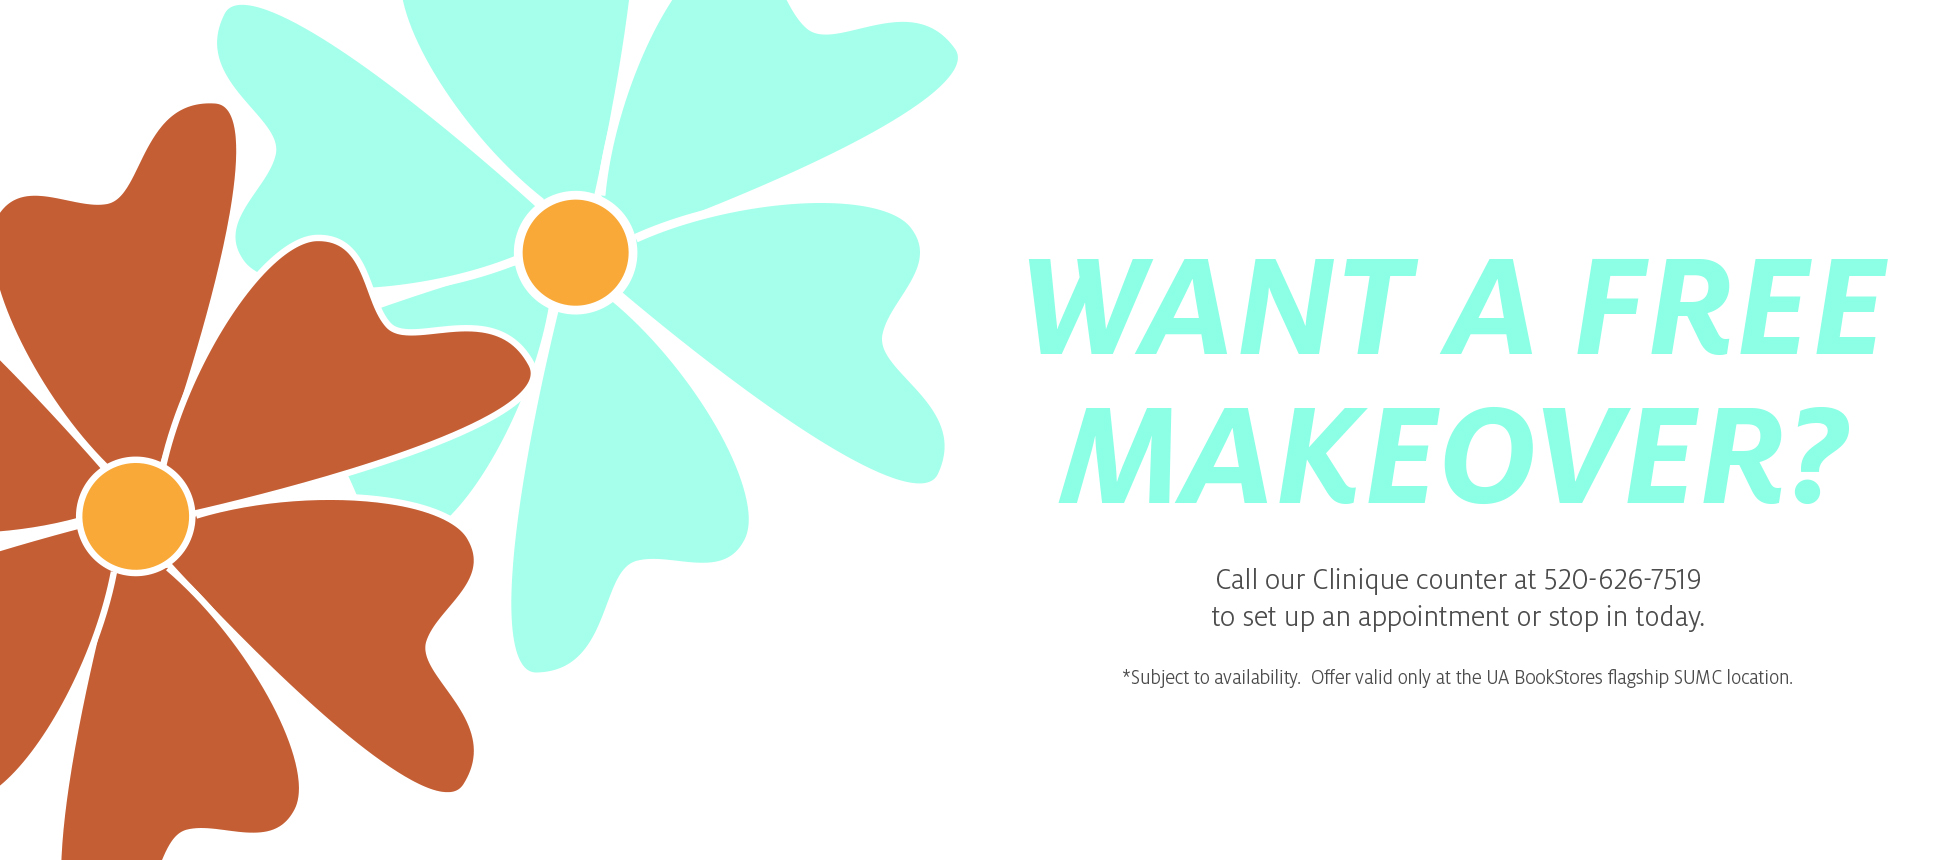 Want A Free Makeover? Call Our Clinique Counter at 520-626-7159